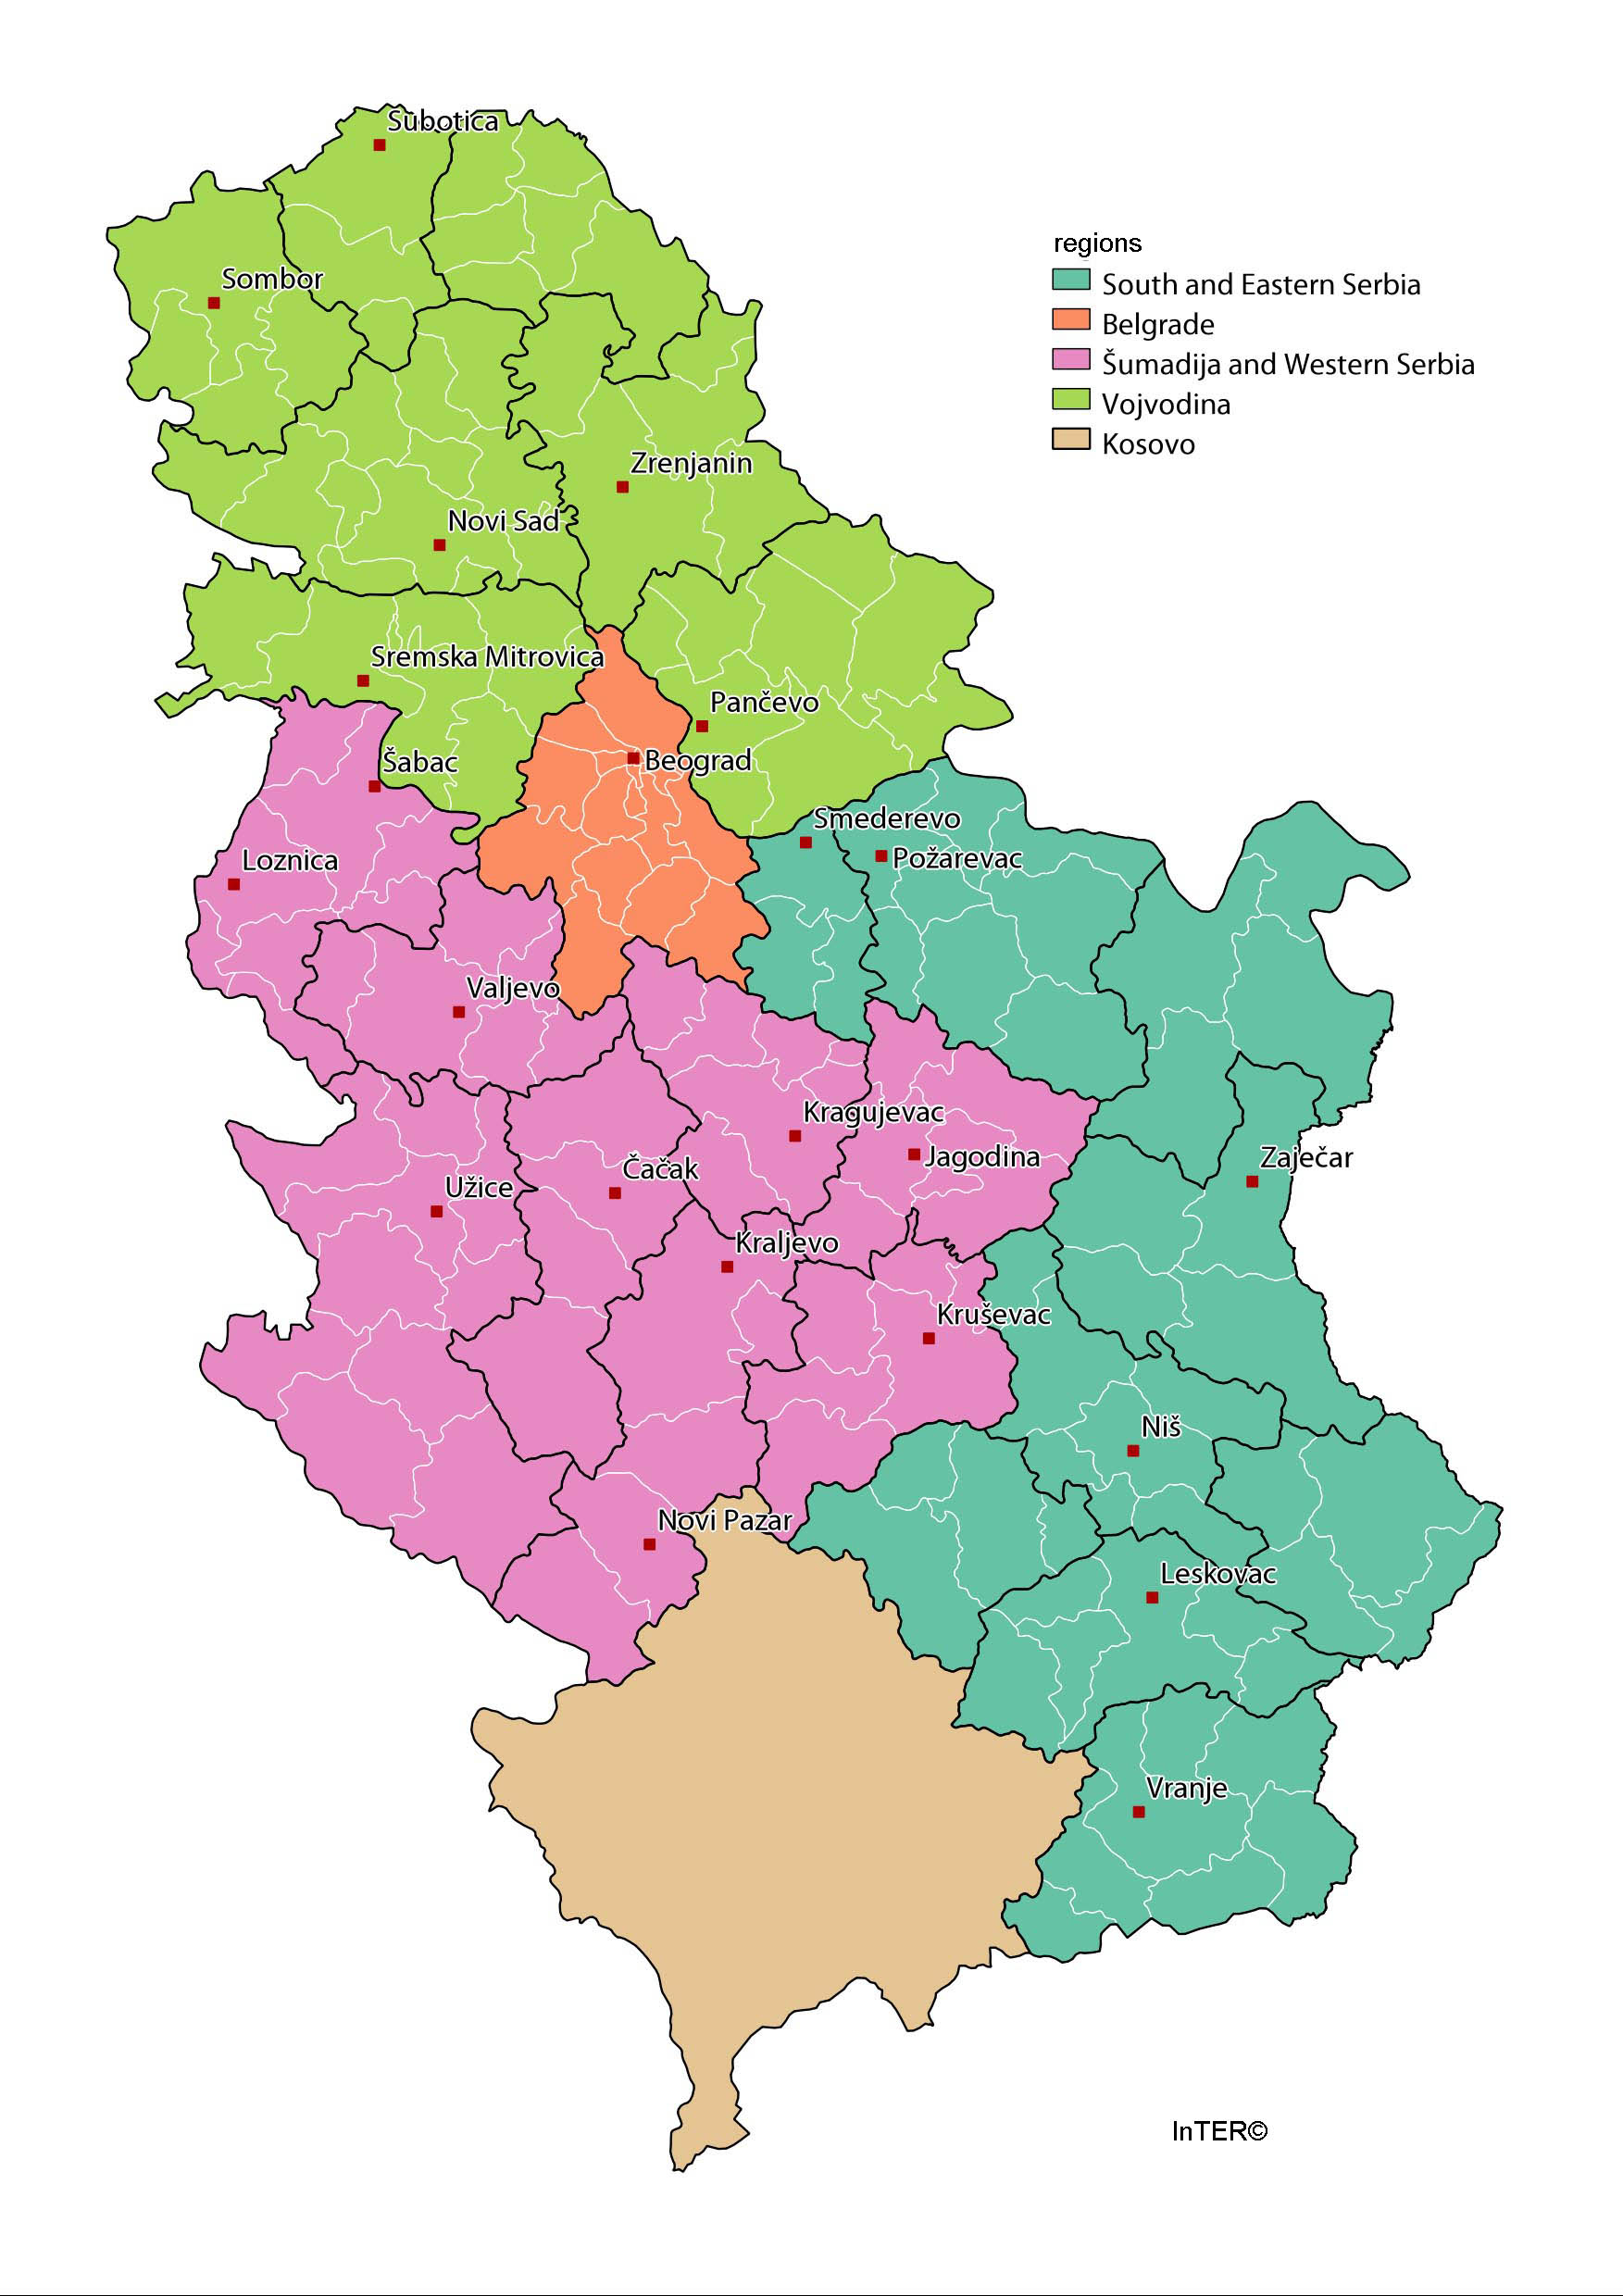 Inter Map Of Regions And Cities In Serbia